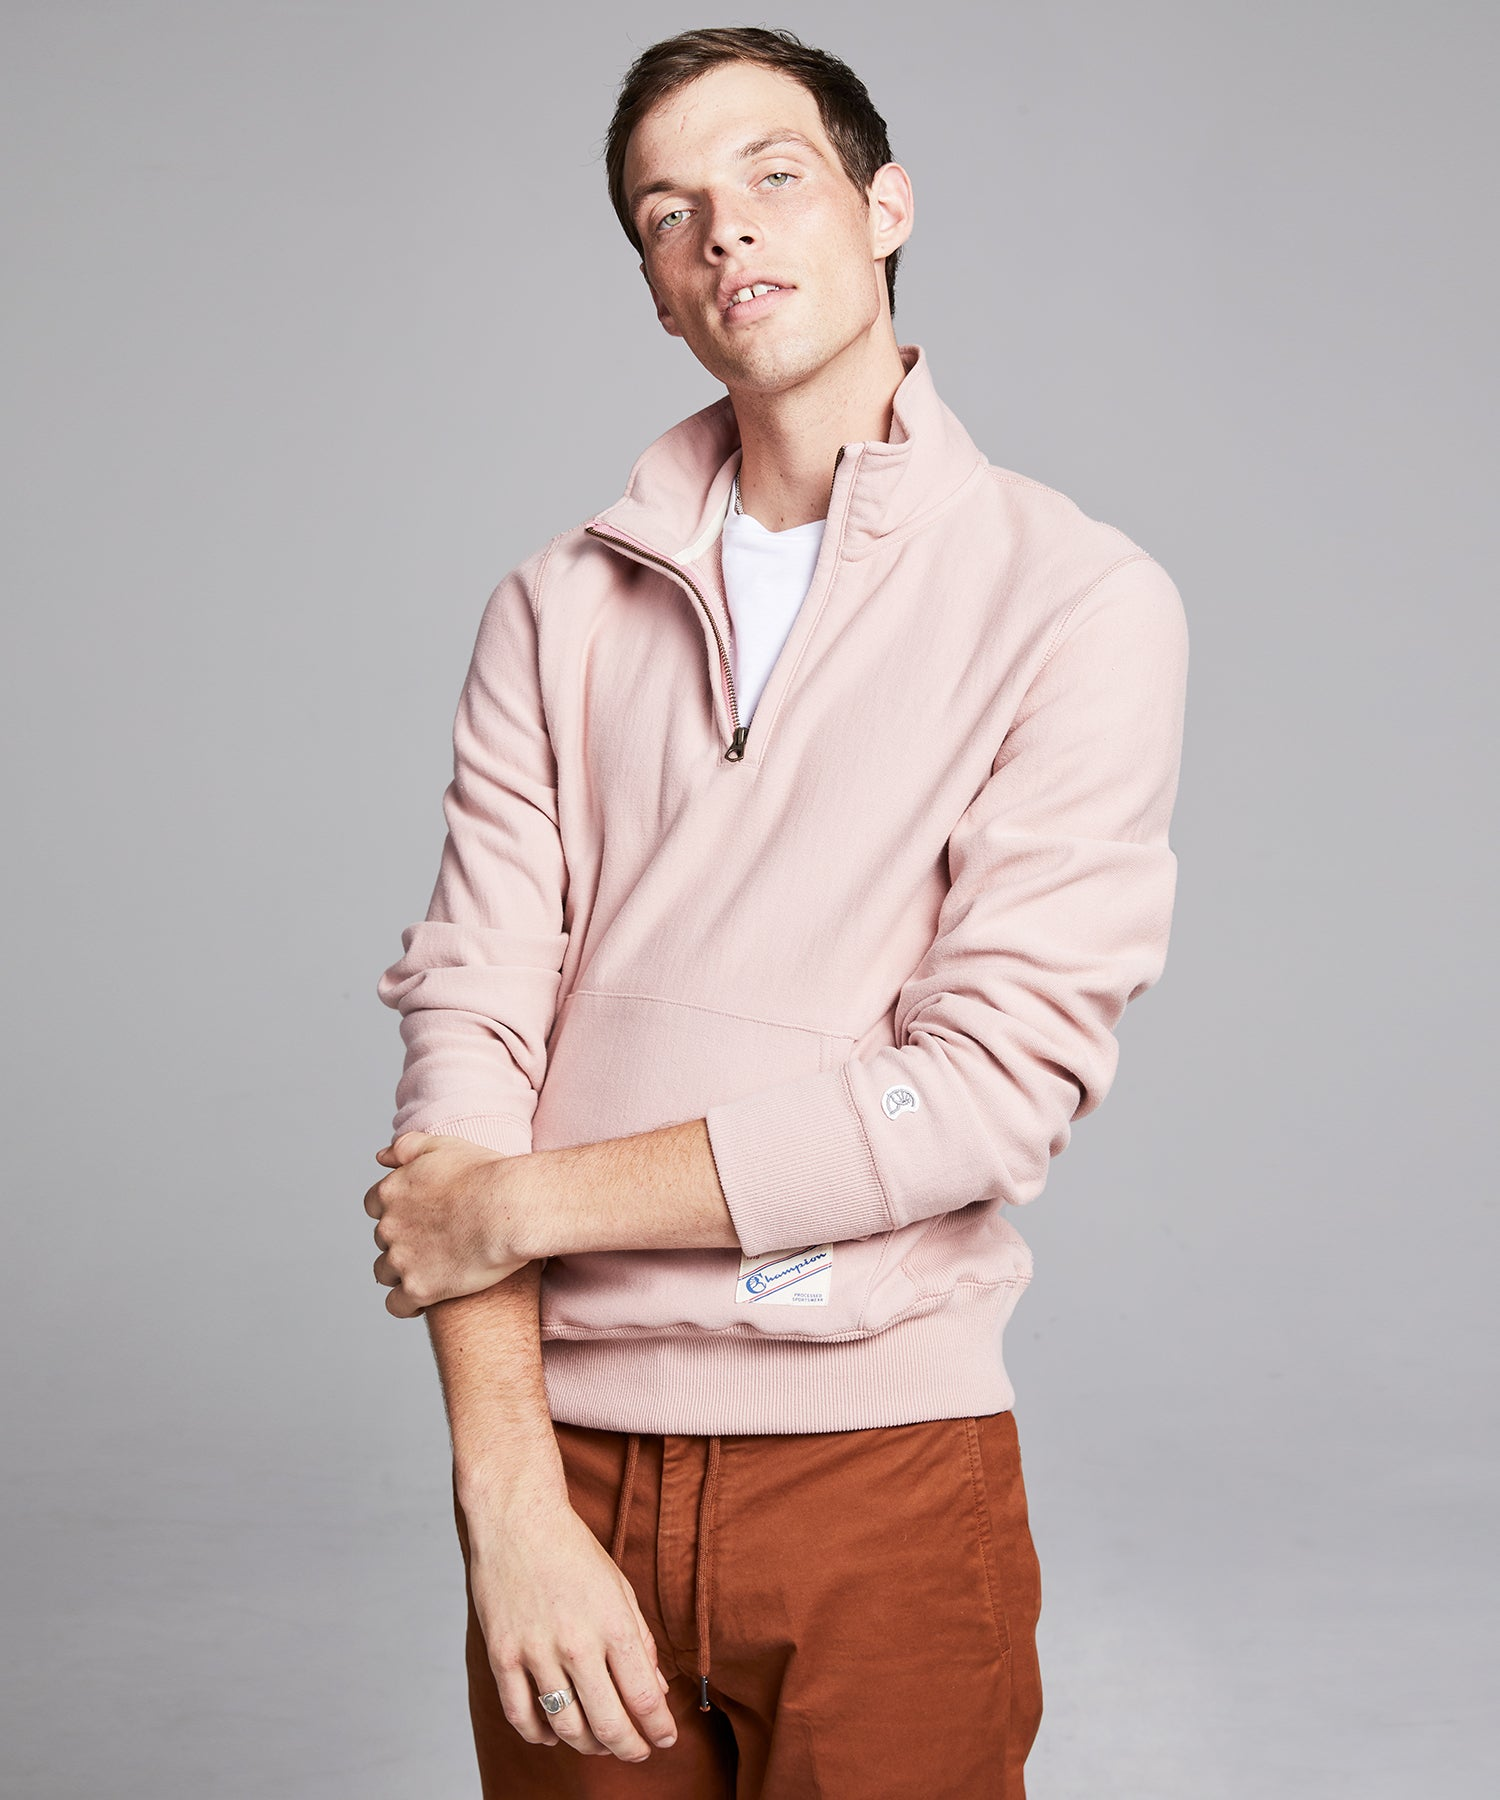 Quarter Zip Sweatshirt in Desert Rose